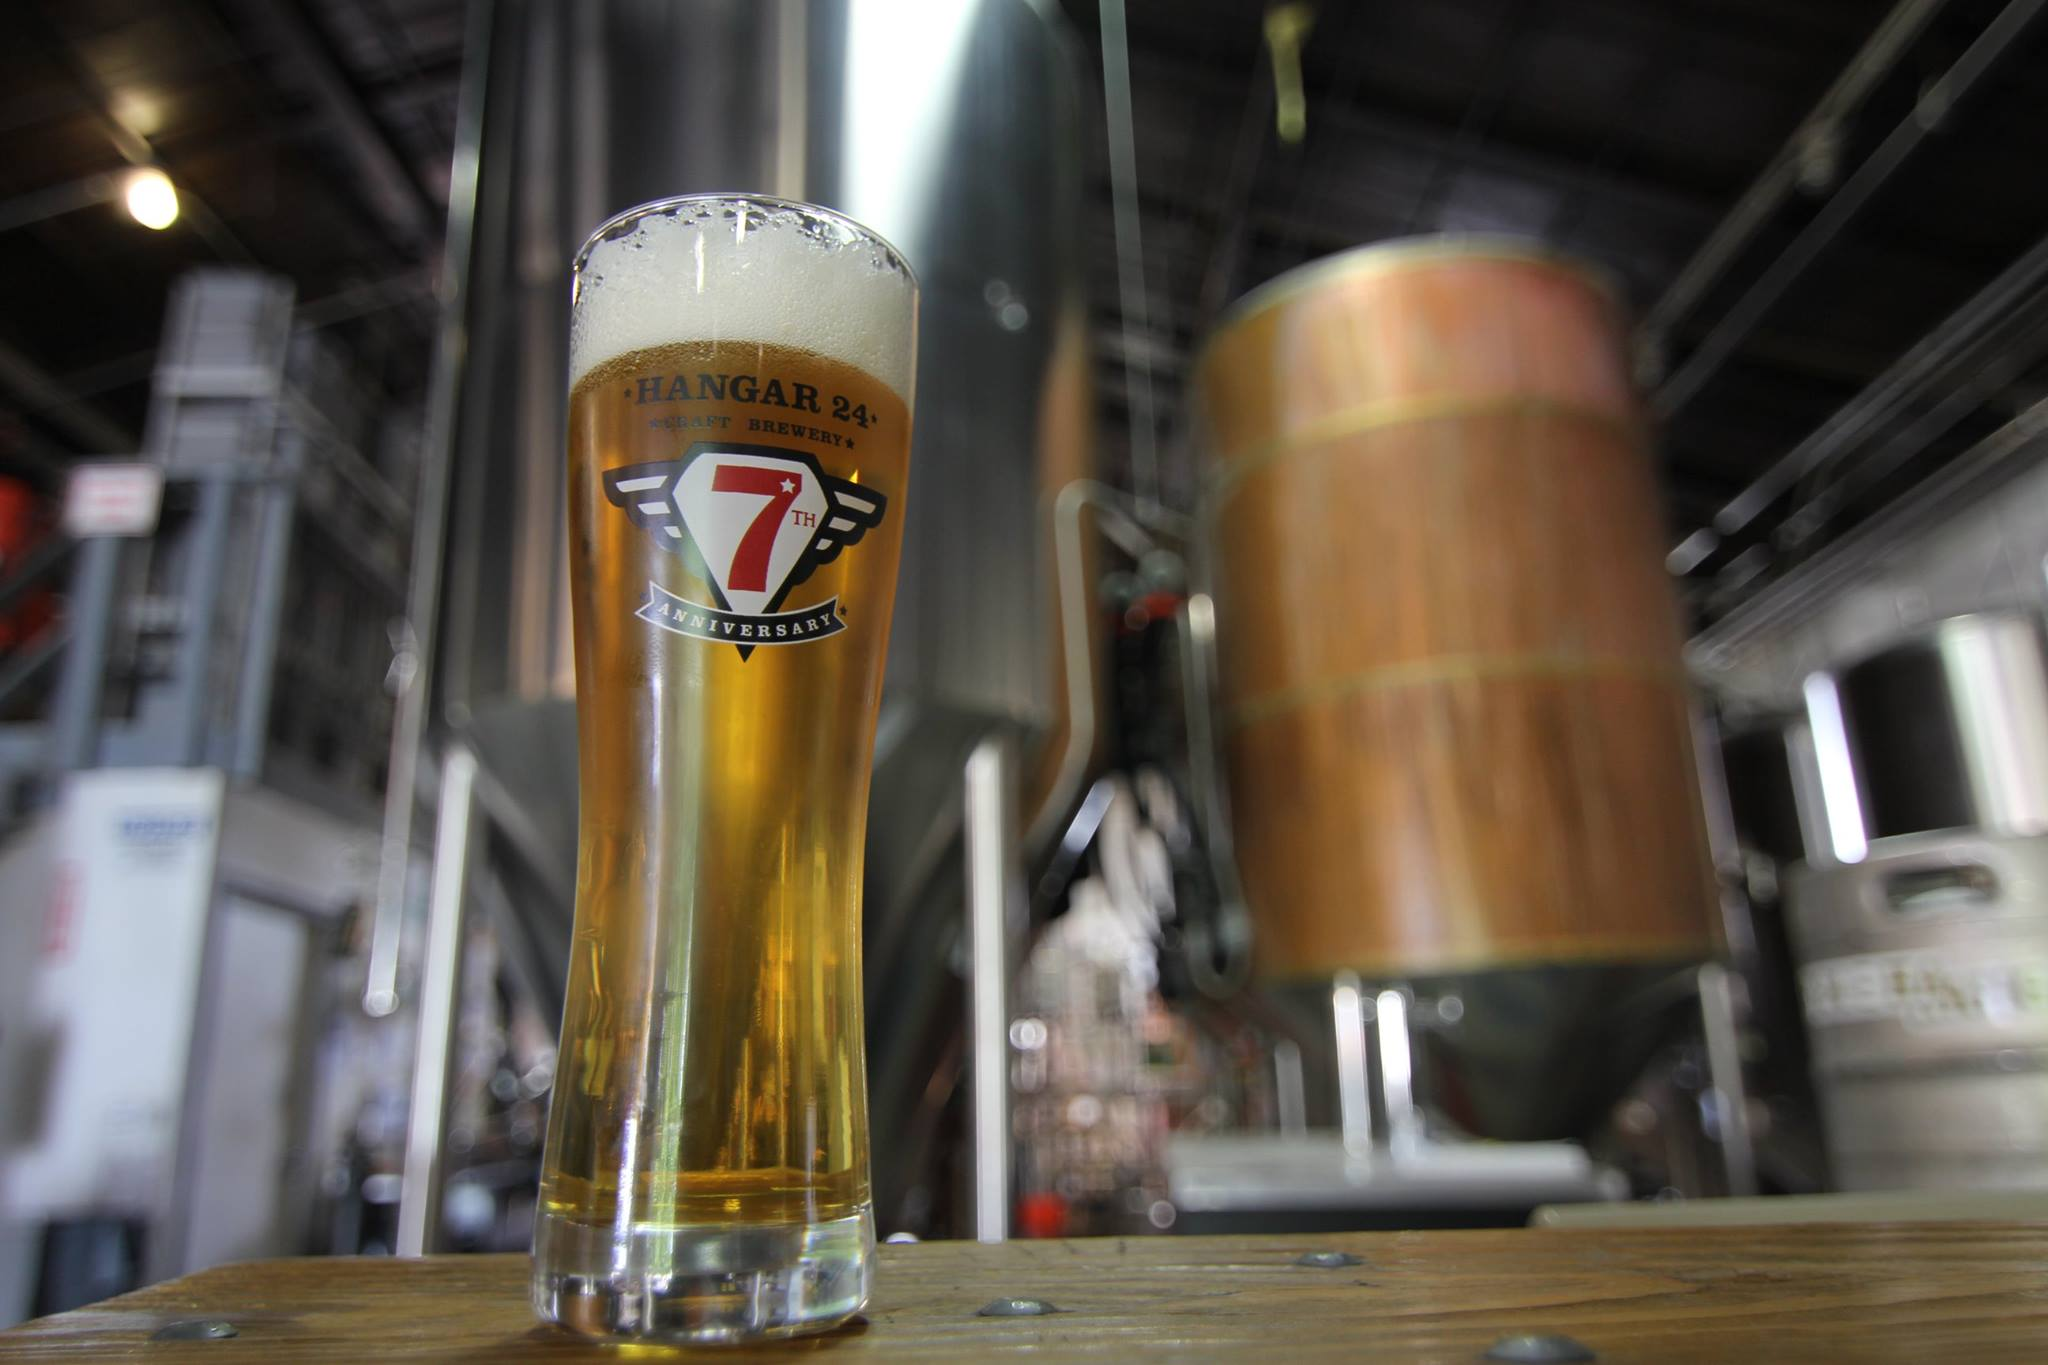 Hangar 24 to Debut 7th Anniversary Pils   Brewbound com Redlands  CA     Hangar 24 Craft Brewery will debut their 7th Anniversary  Pils  a German style Pilsner  at the Hangar 24 AirFest and 7th Anniversary